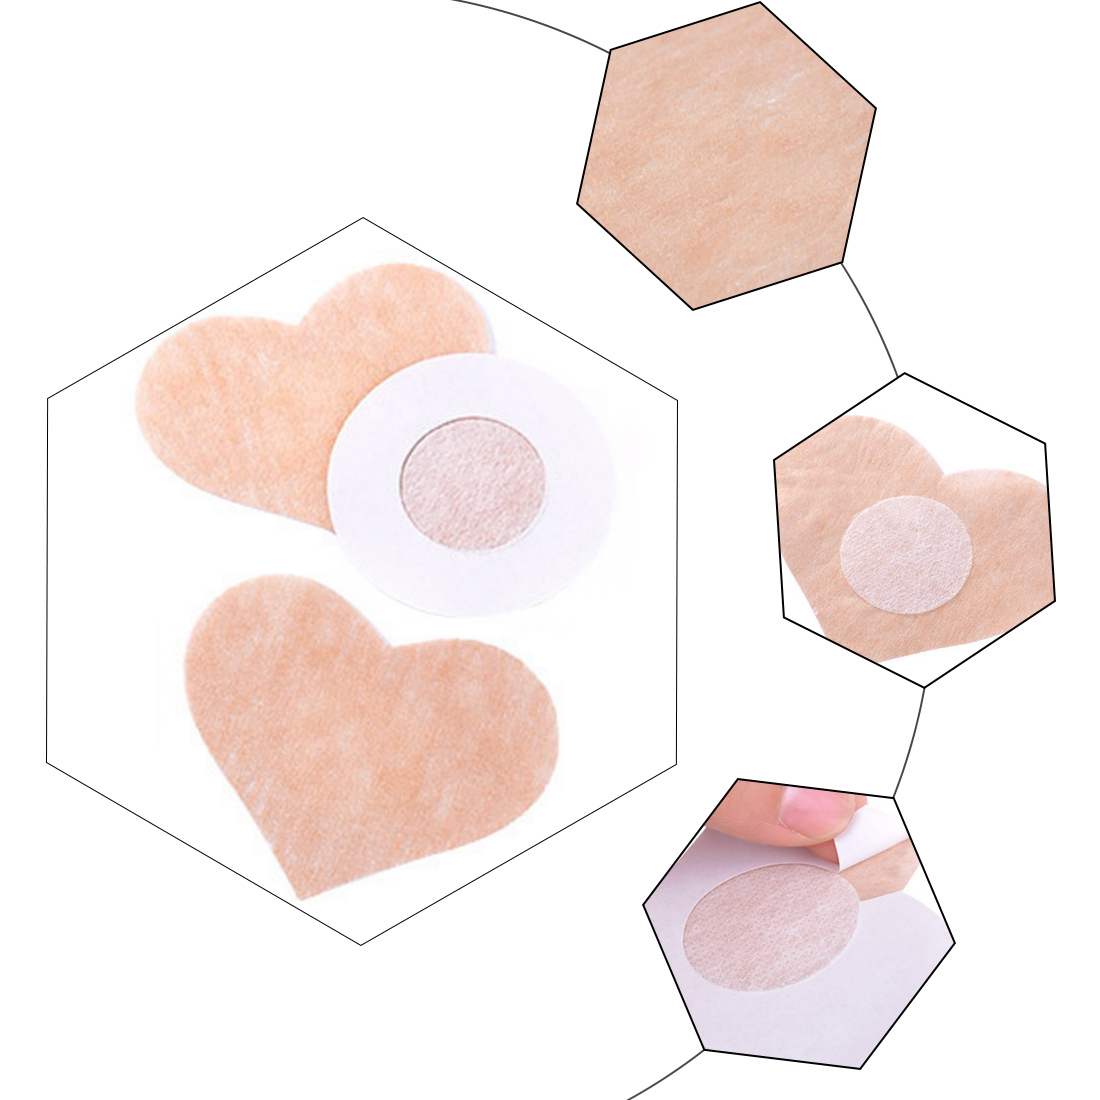 Fashion 10 Pcs=5Pair Breast Petals Sexy Disposable Soft Silicone Nipple Cover Bra Pad Pasties For Women Intimates Accessories